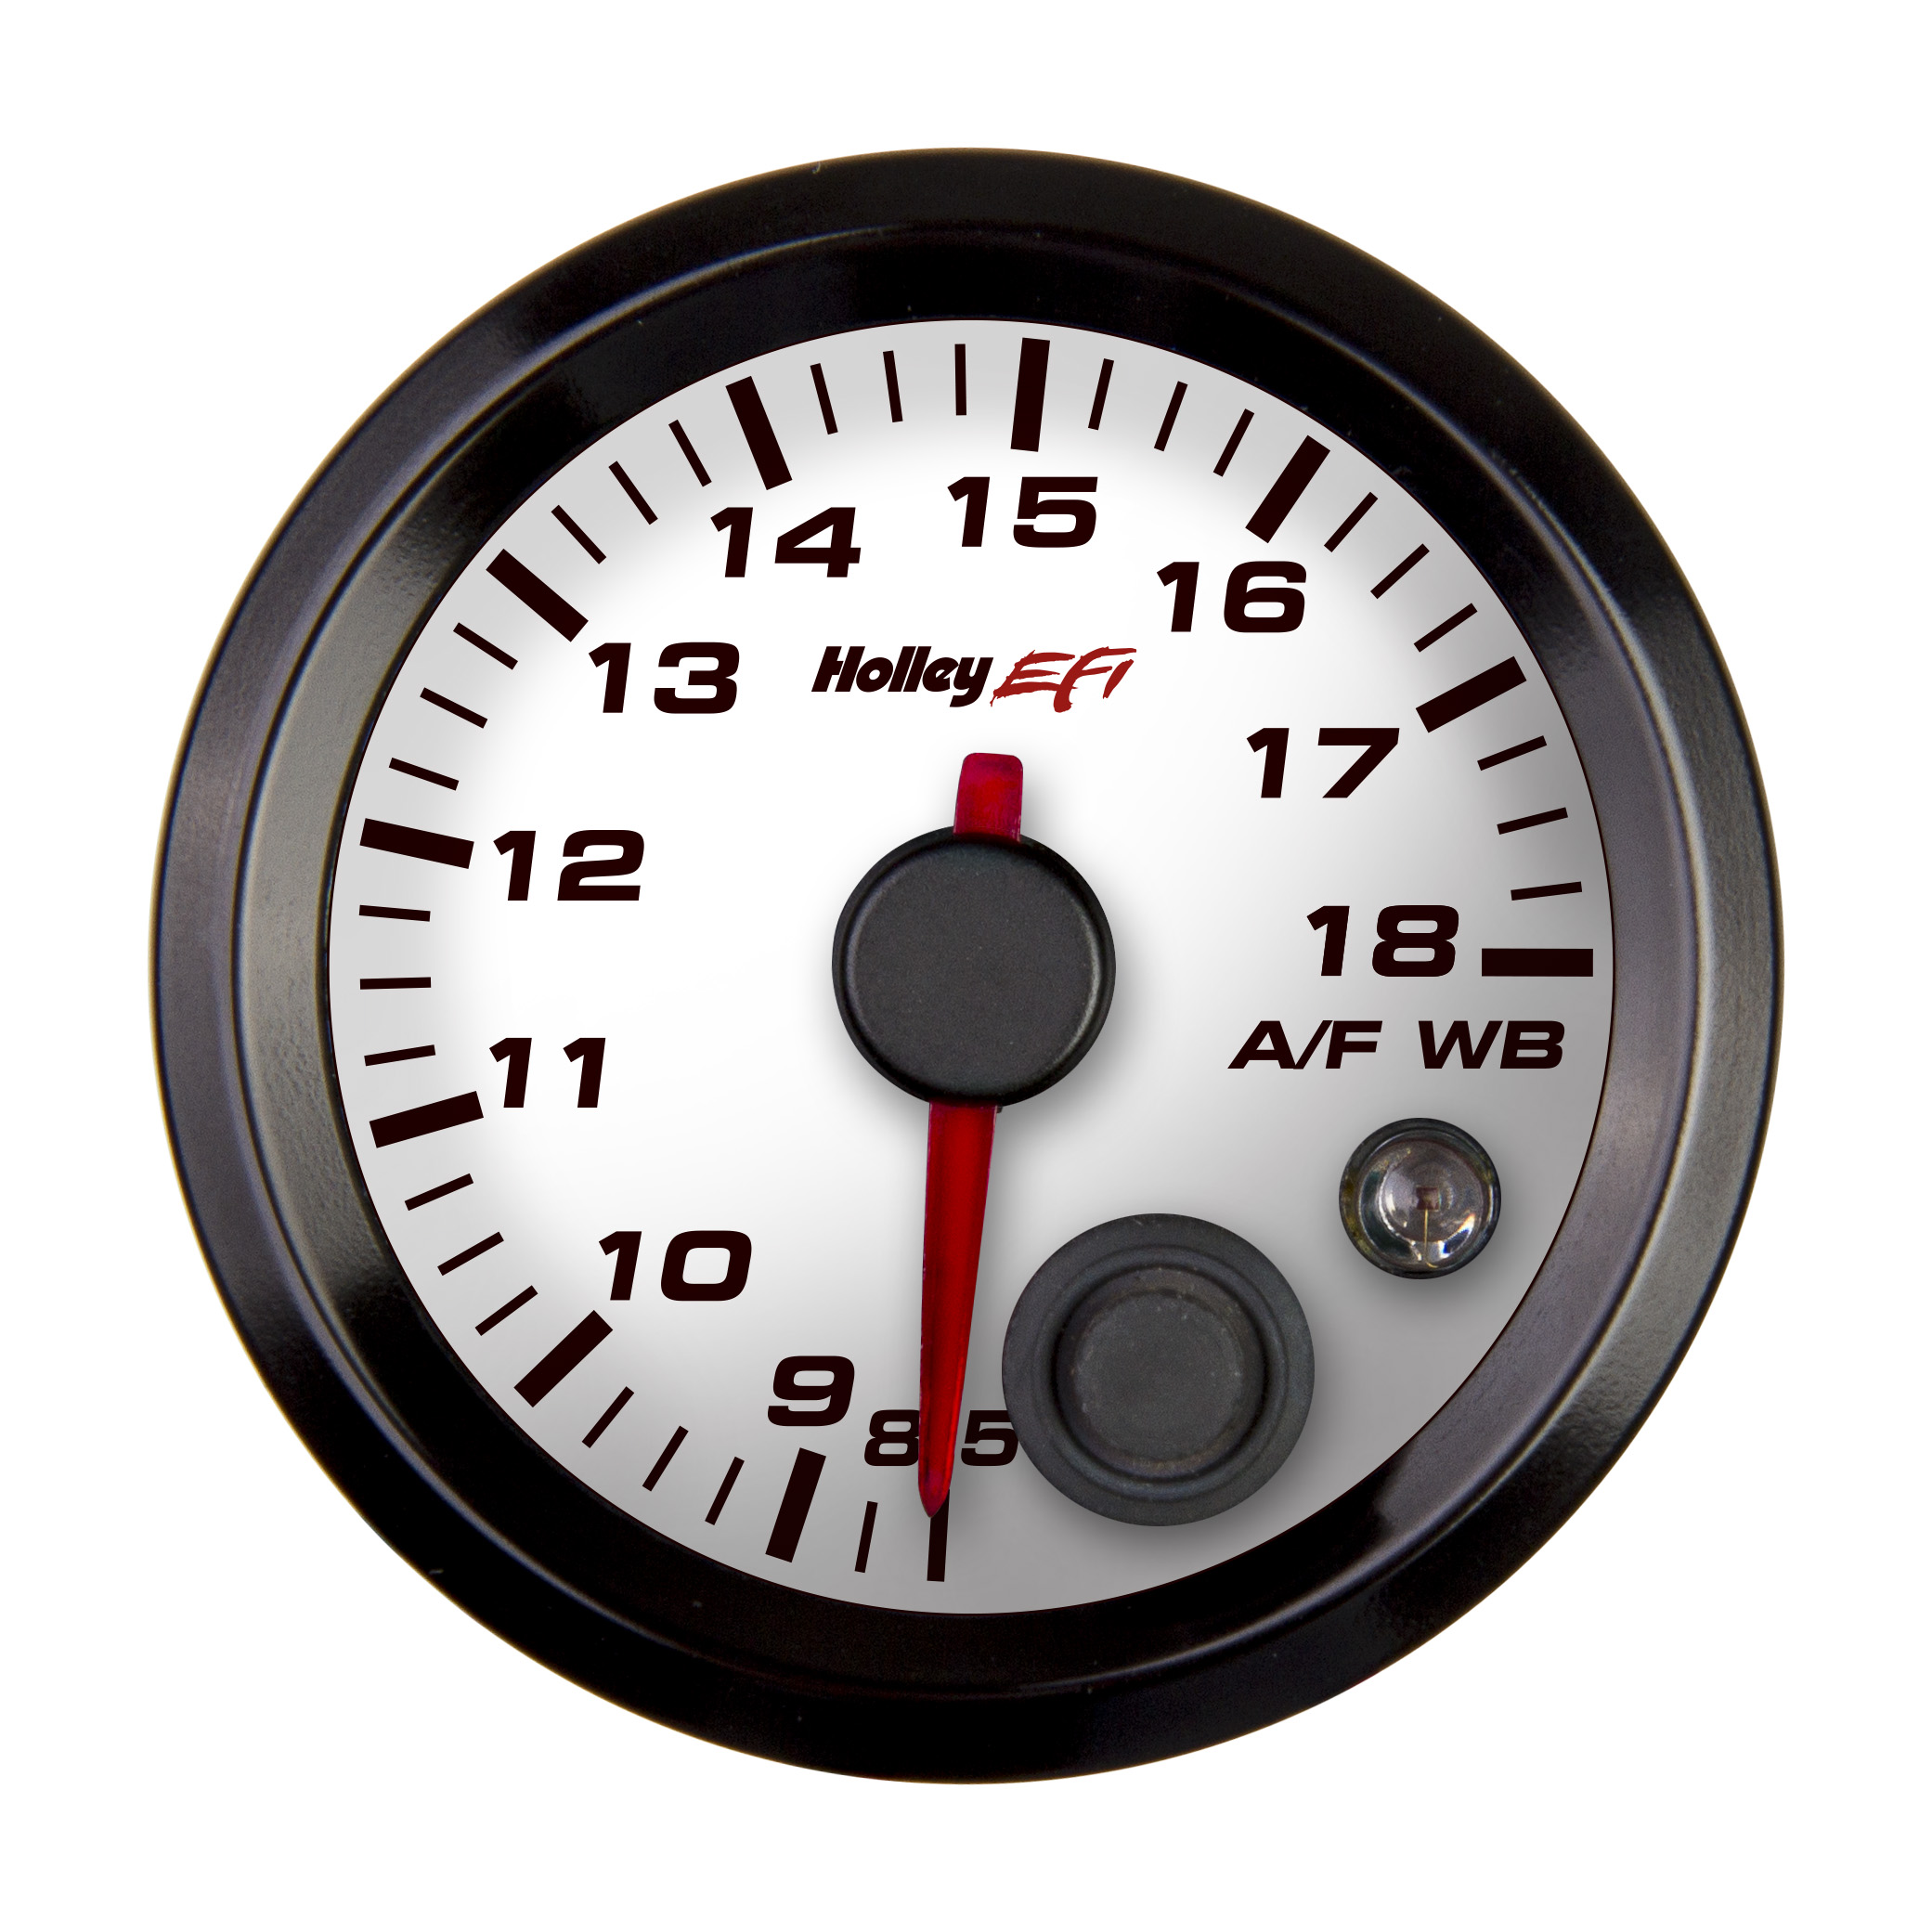 "Holley EFI Standalone Air/Fuel Wideband 02 Guage Kit - 2-1/16"" Wideband A/F Guage, 8.5-18, White  Face"